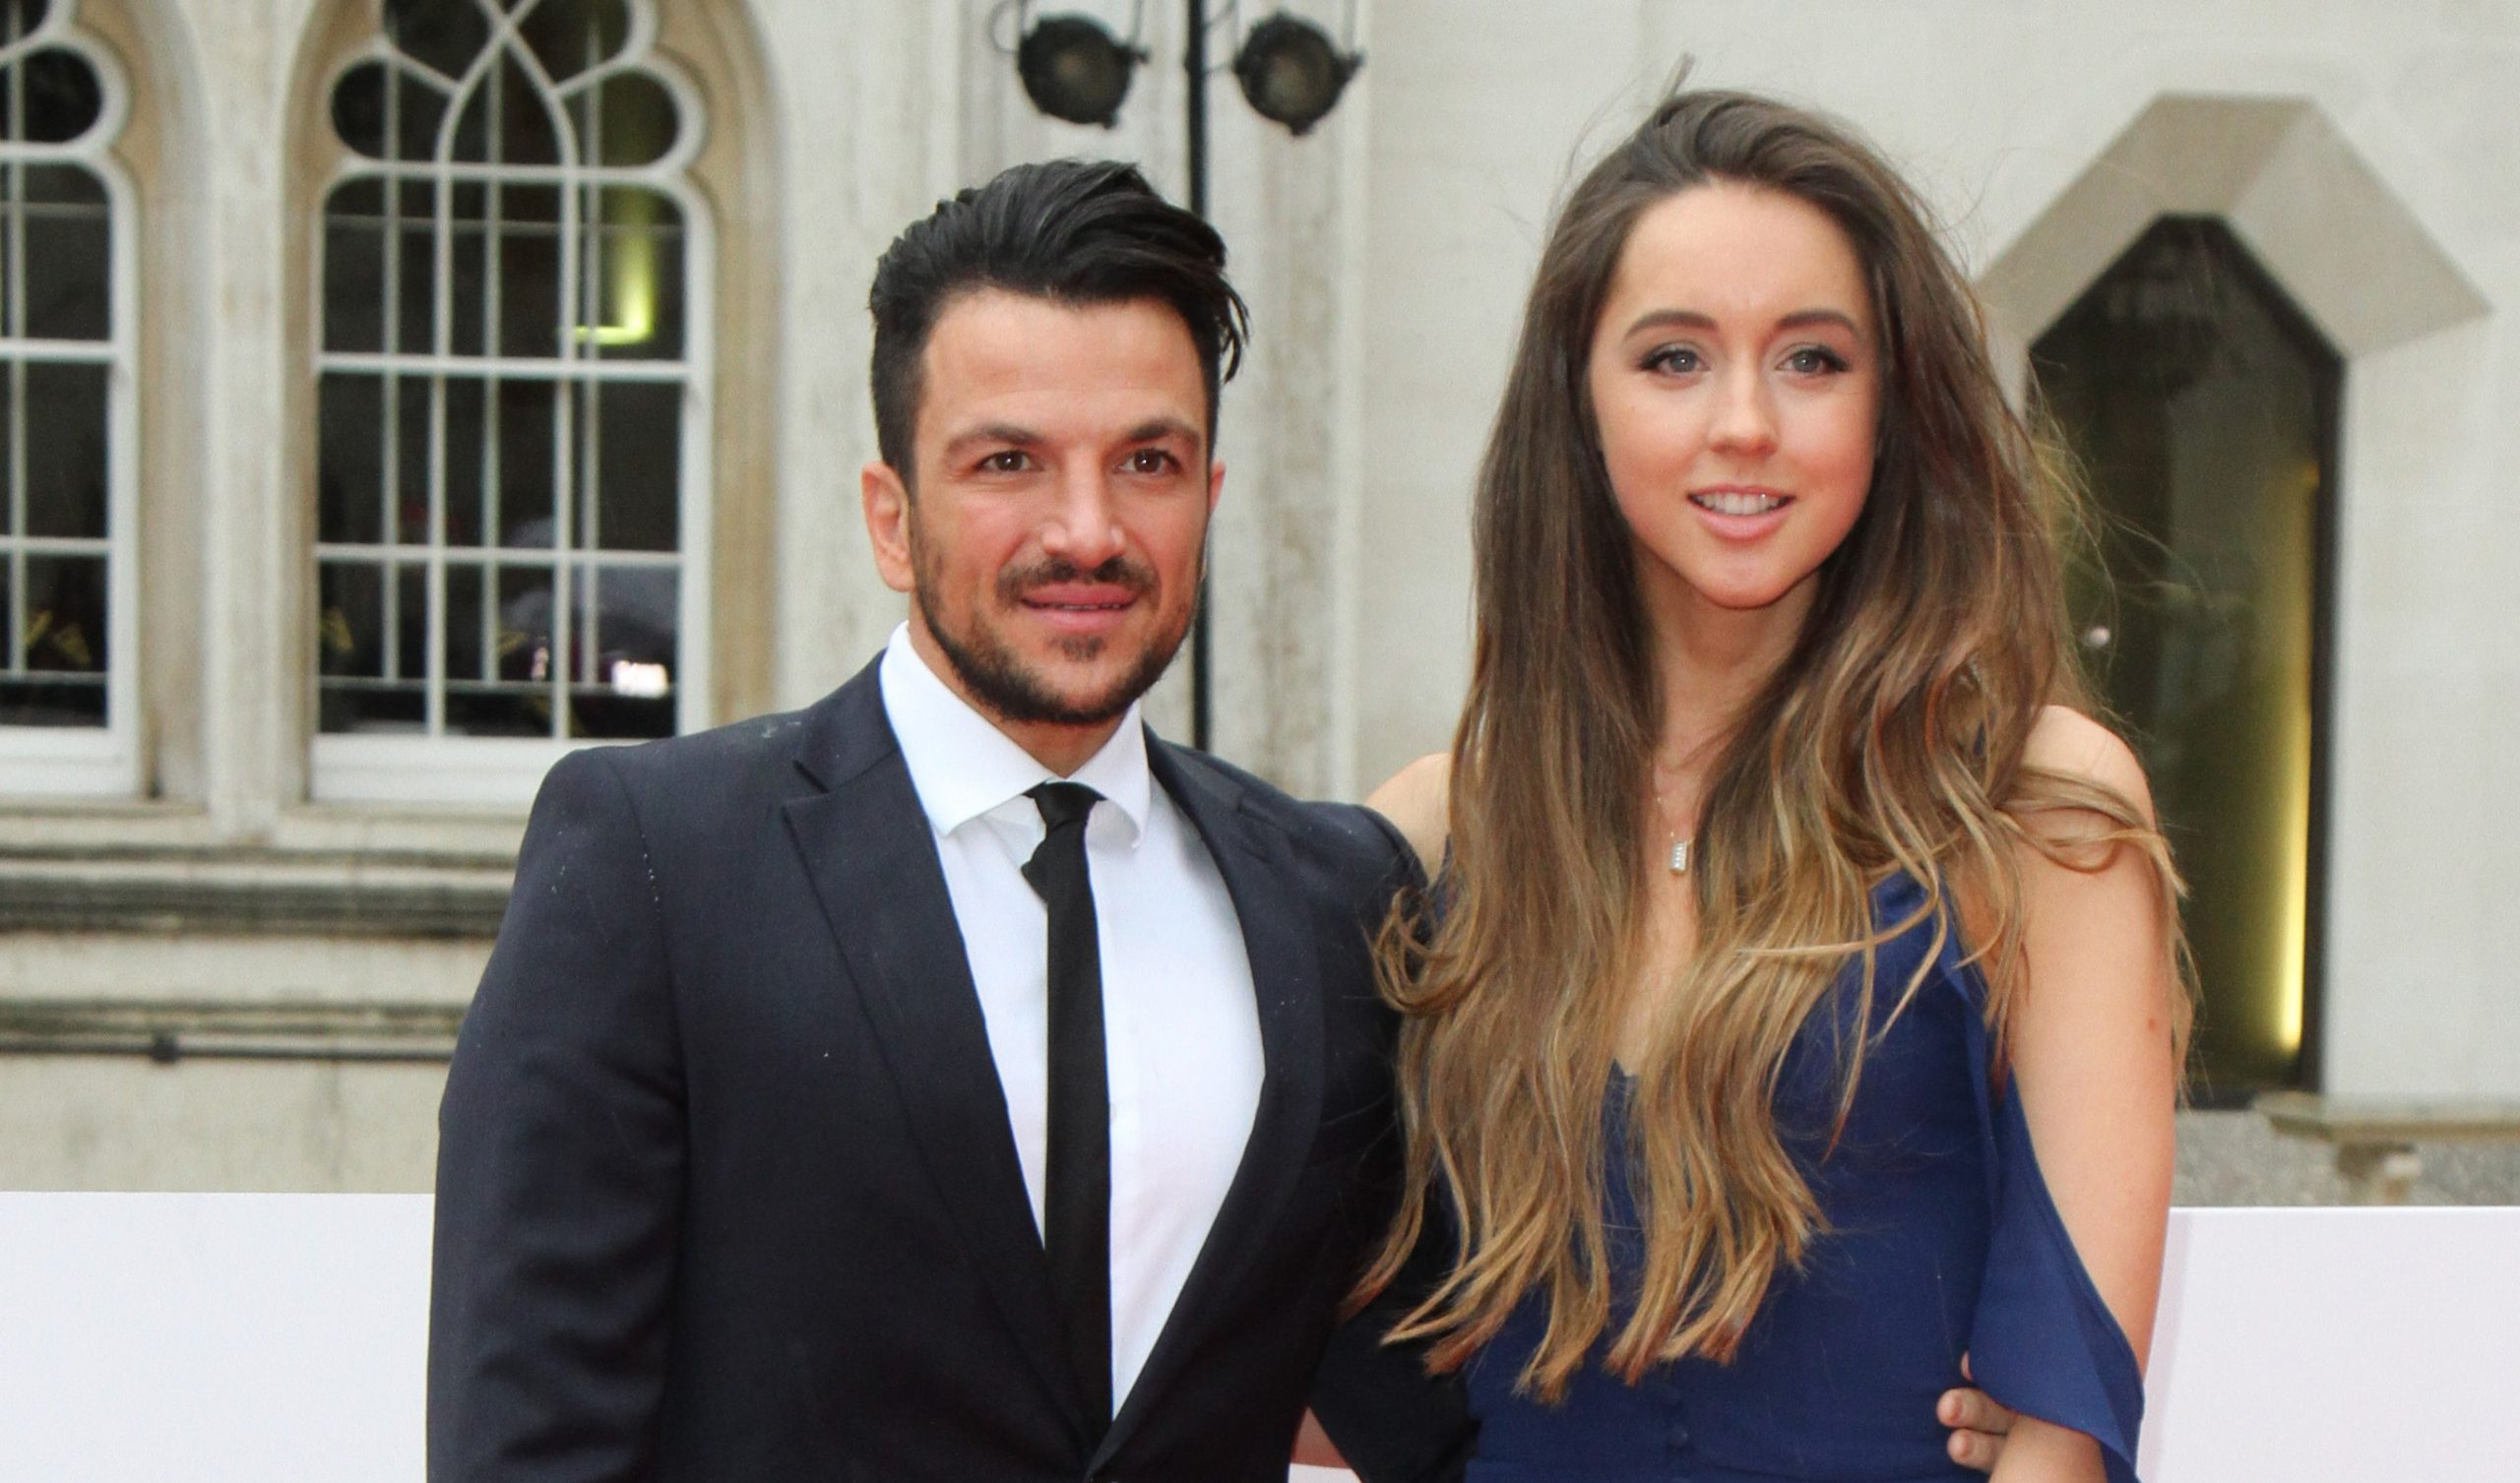 Peter Andre's wife Emily wants a third baby